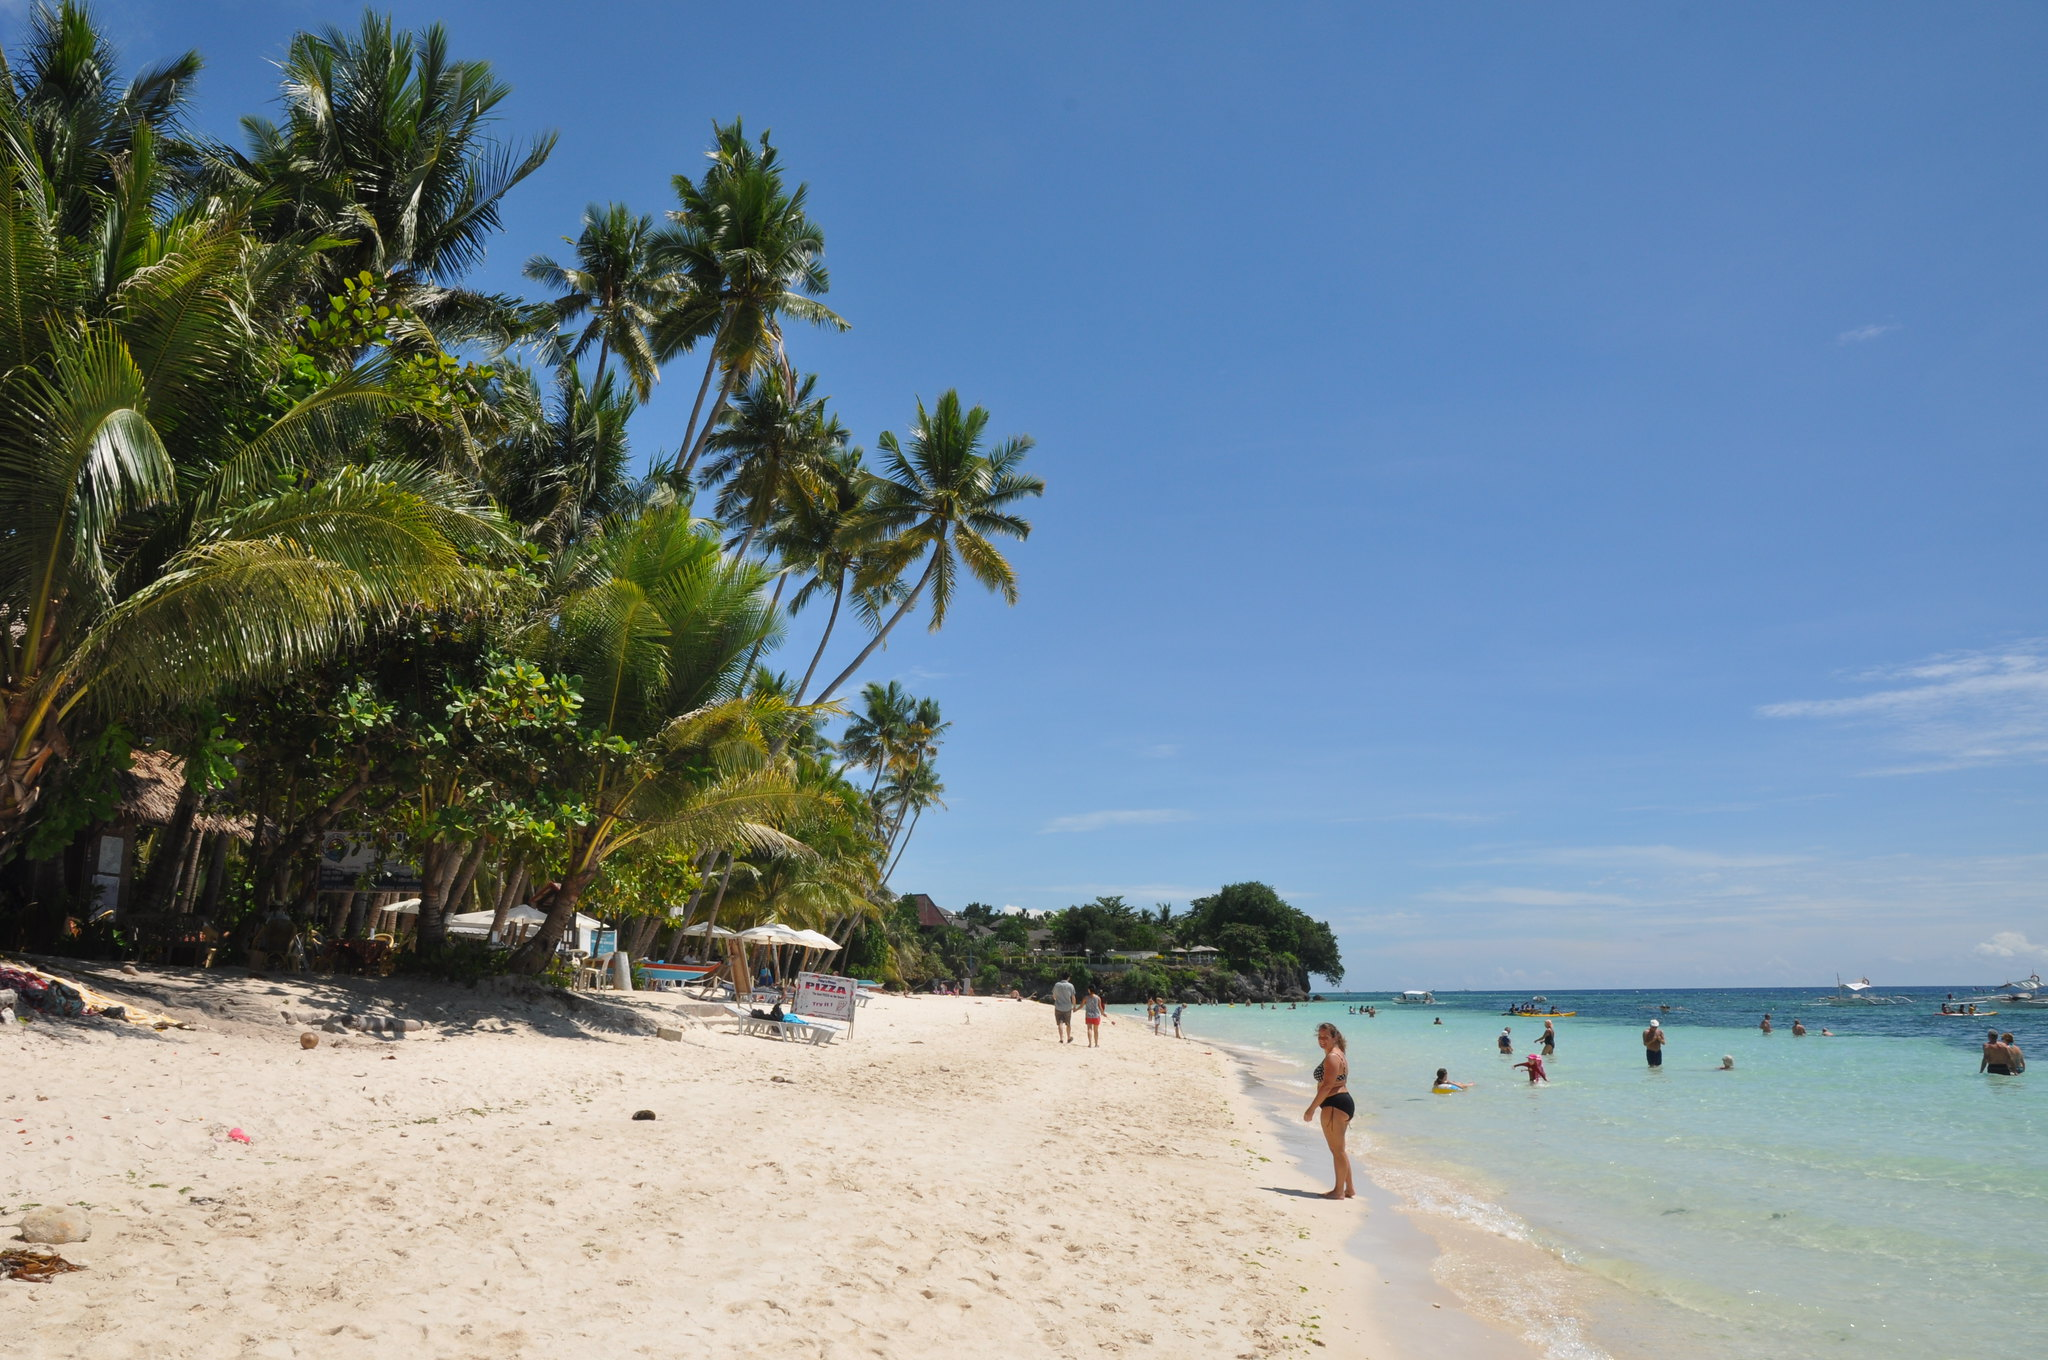 20 Best Islands with White Sand Beaches in the Philippines